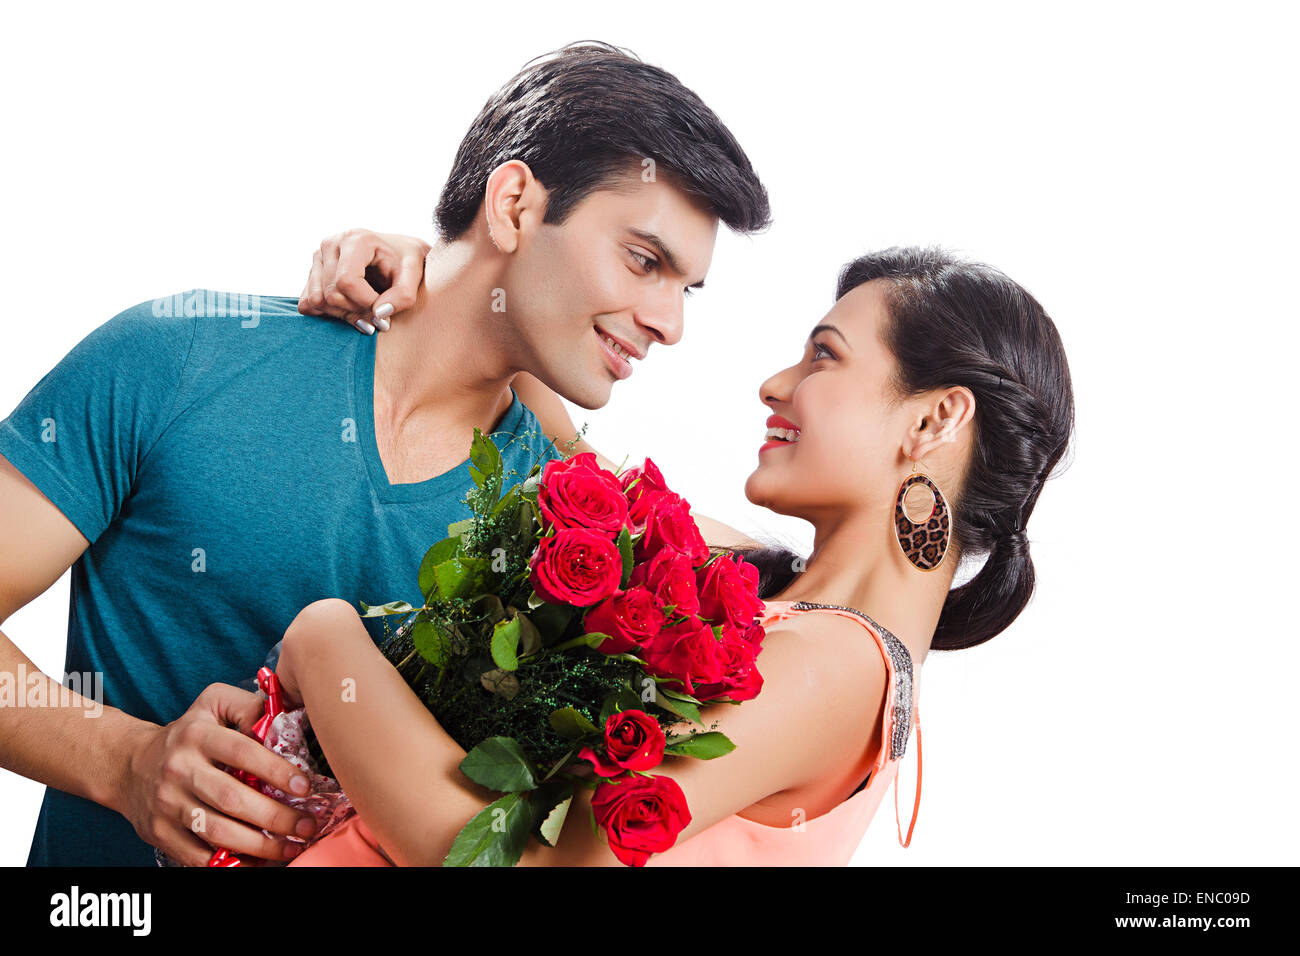 2 Indian Married Couples Rose Bouquet Surprise Valentine Day Stock